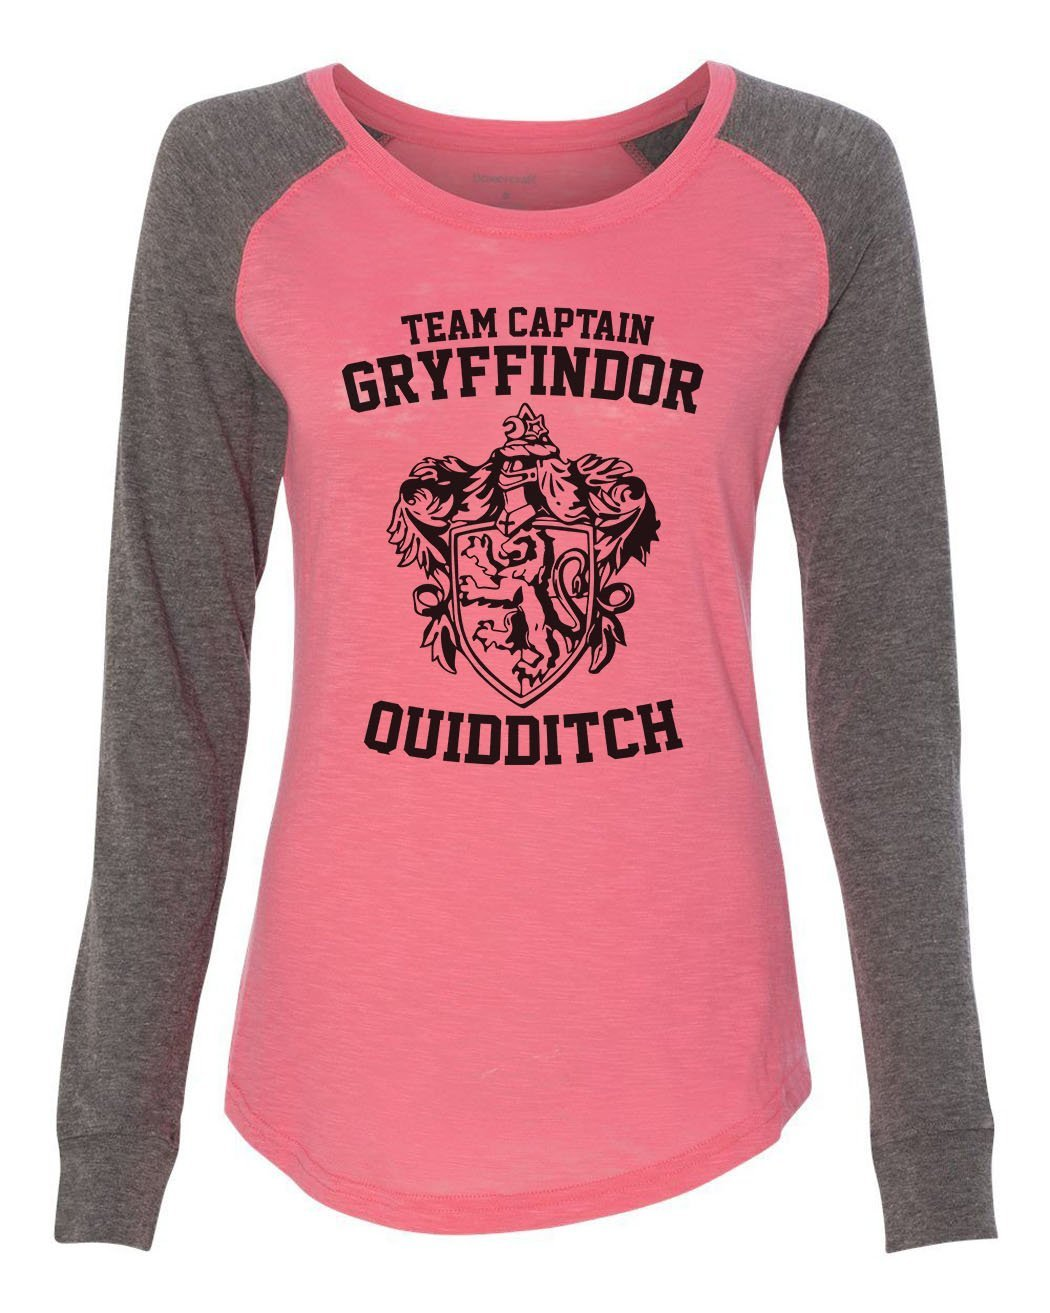 "Womens ""Team Captain Gryffindor Ouidditch"" Long Sleeve Elbow Patch Contrast Shirt-BurnoutTankTops.com"